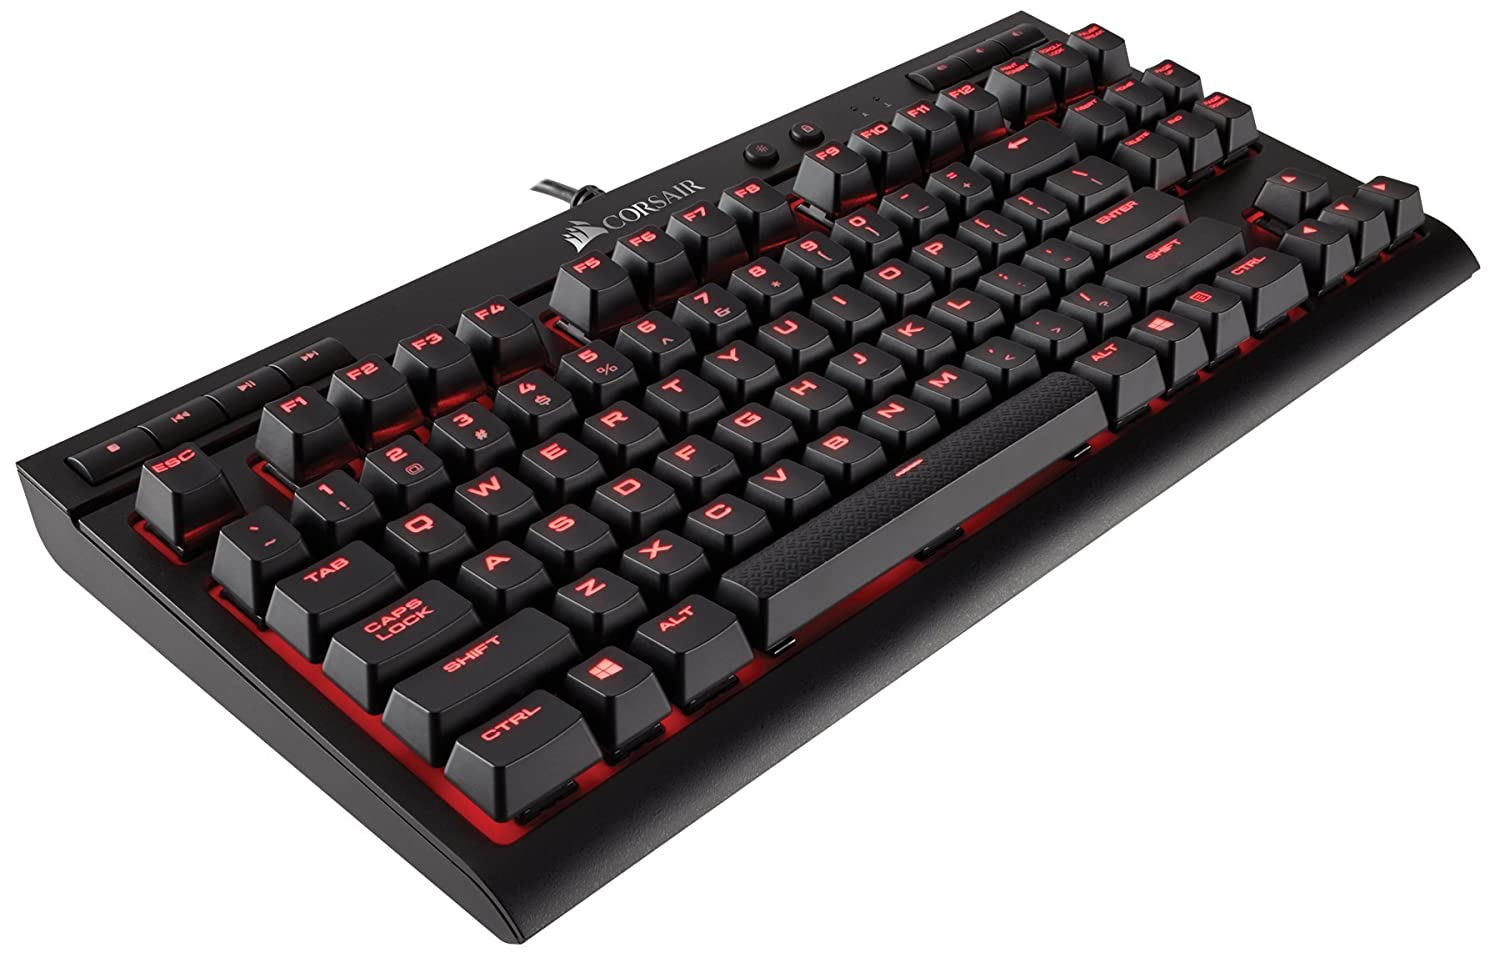 Teclado Mecanico Compacto CORSAIR K63 Cherry MX Red con Cable